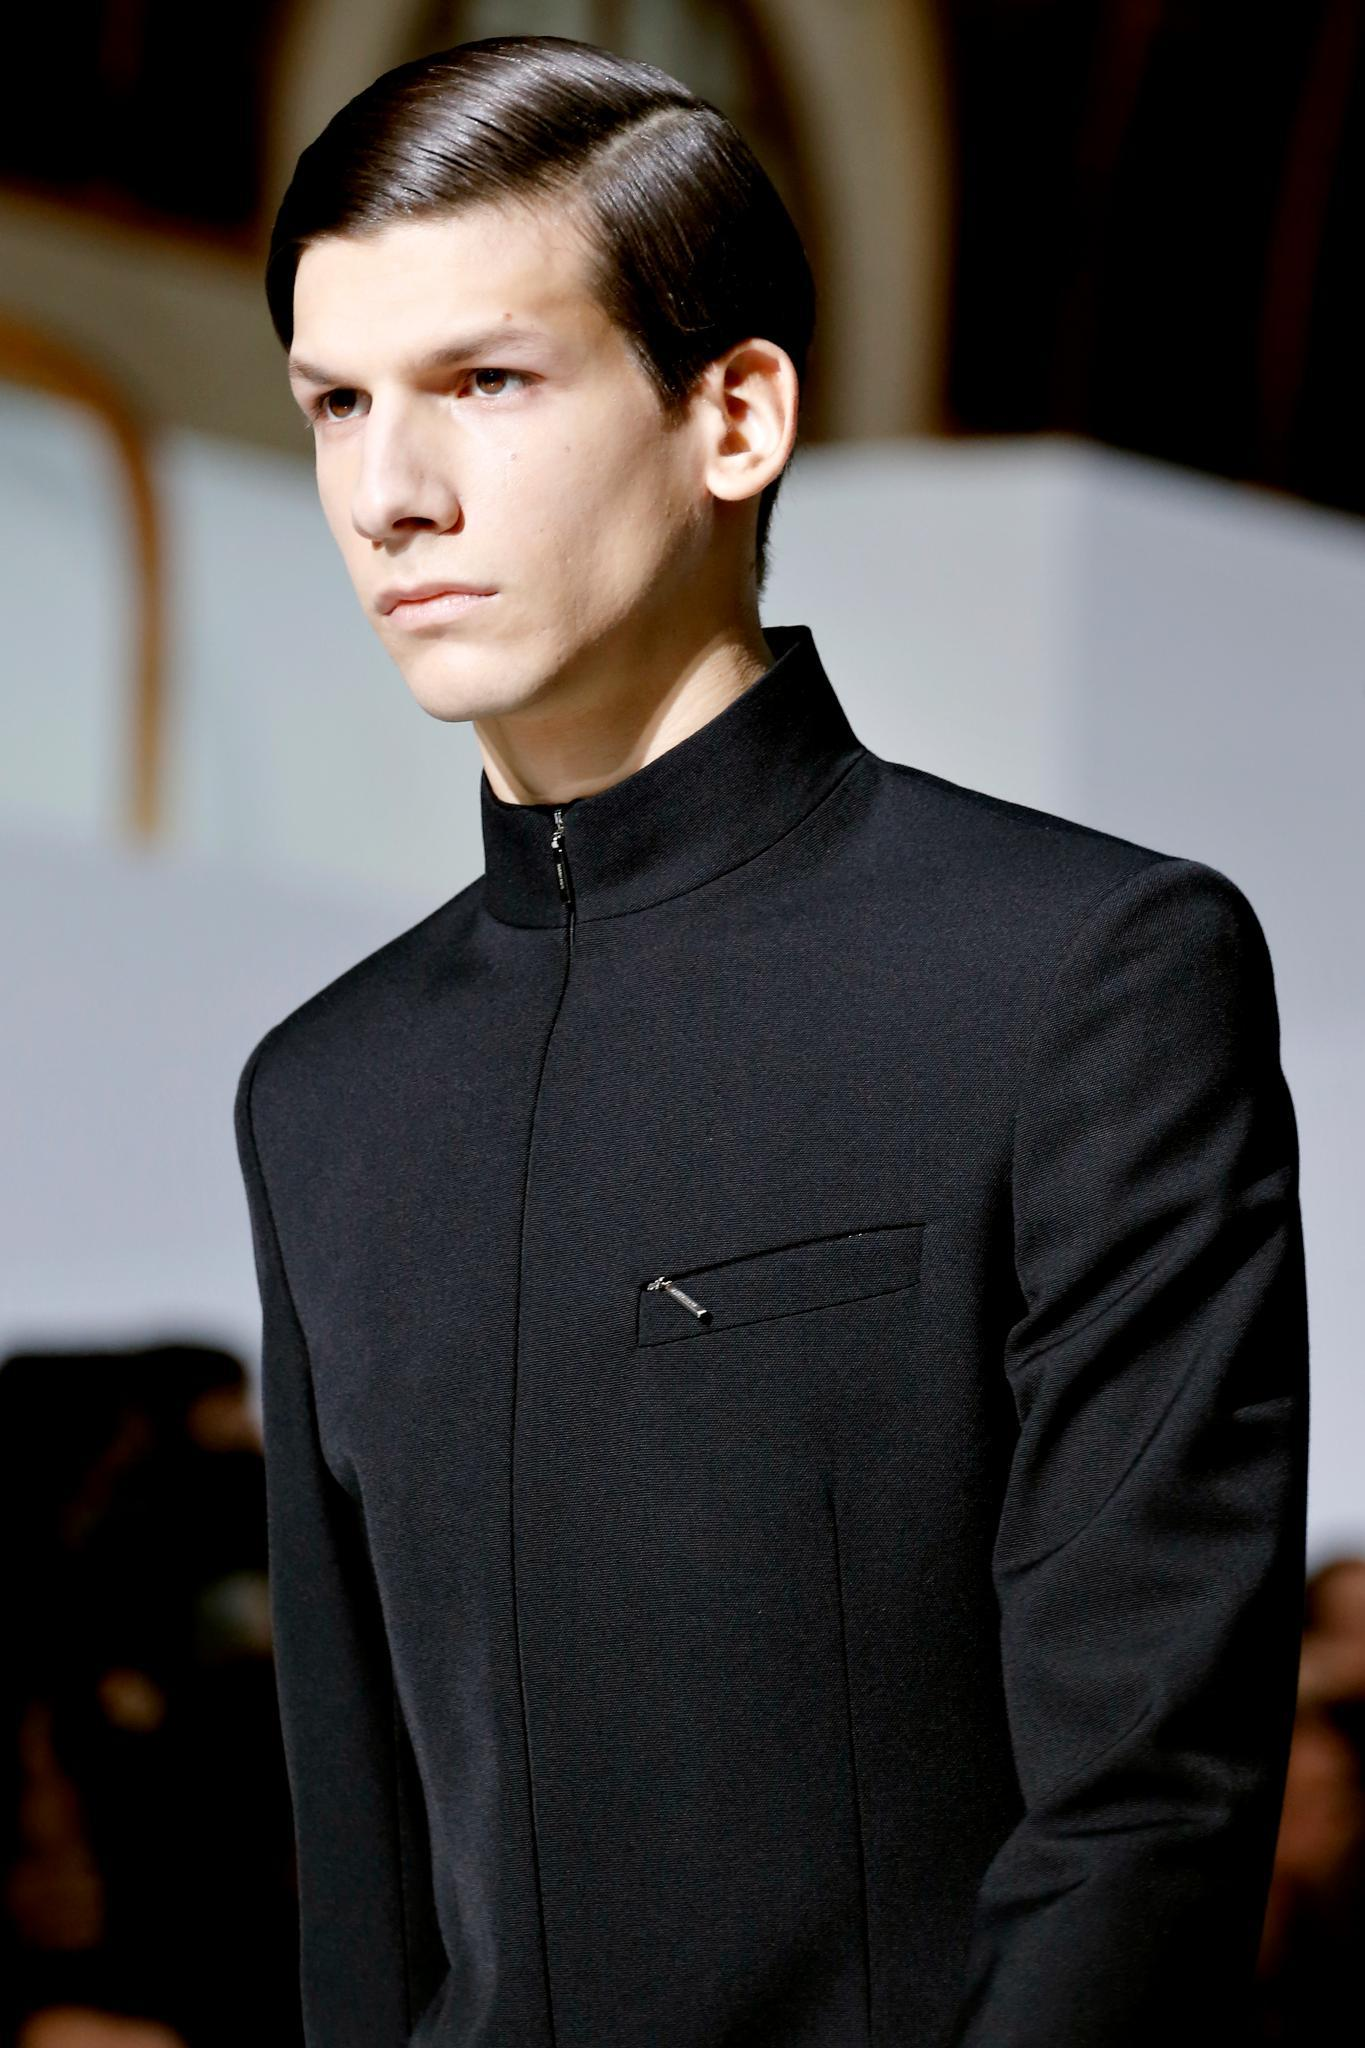 diorhomme-514-fw13 comb over hairstyles